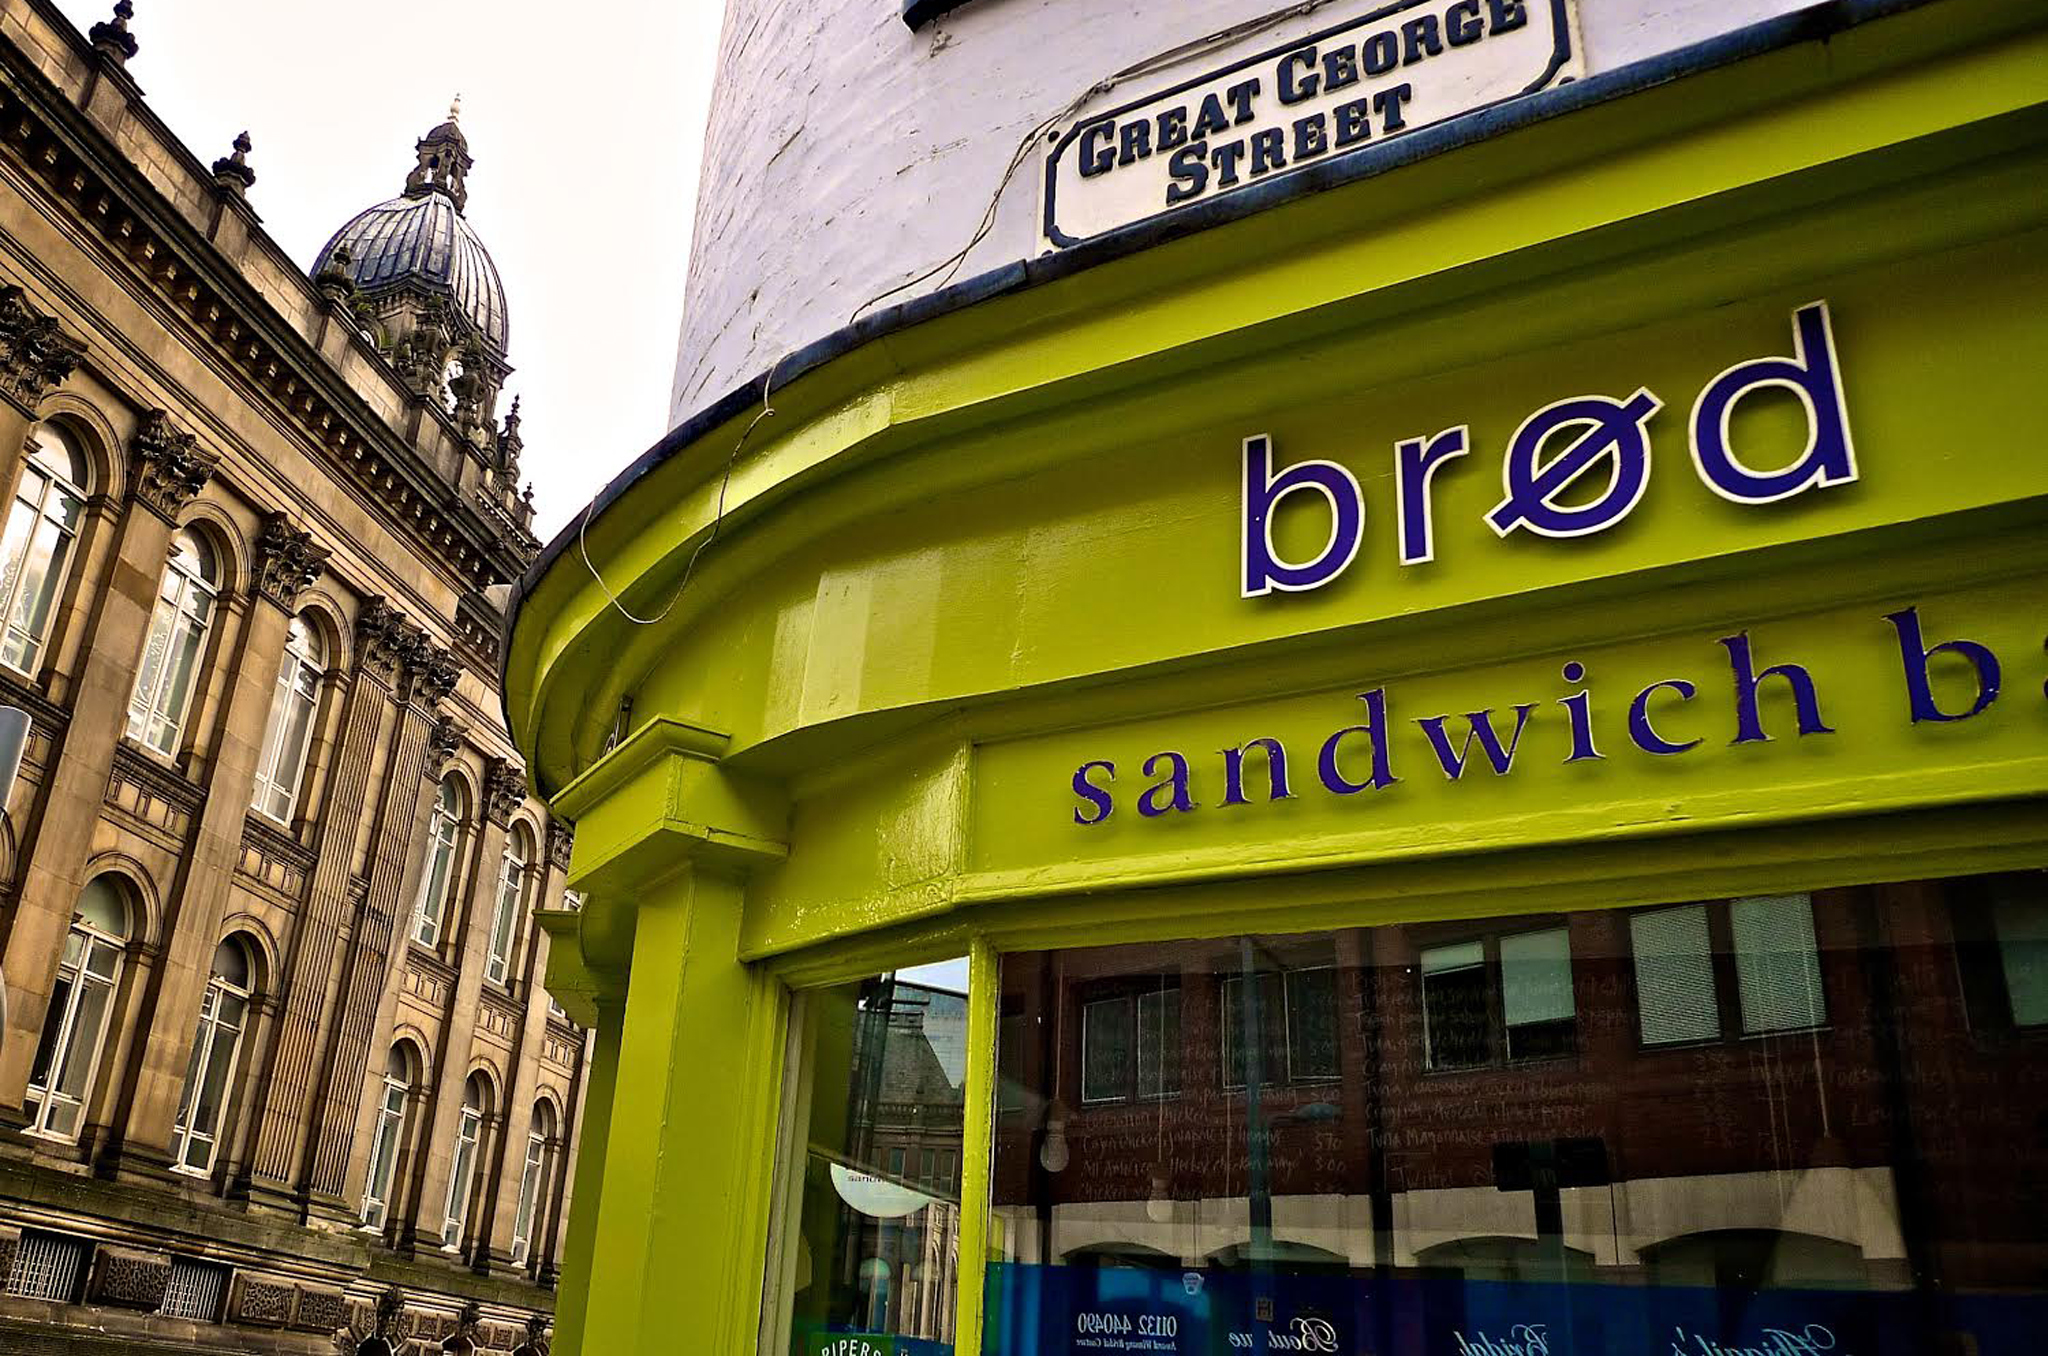 Brod, Sandwich shops, Breakfasts, Leeds